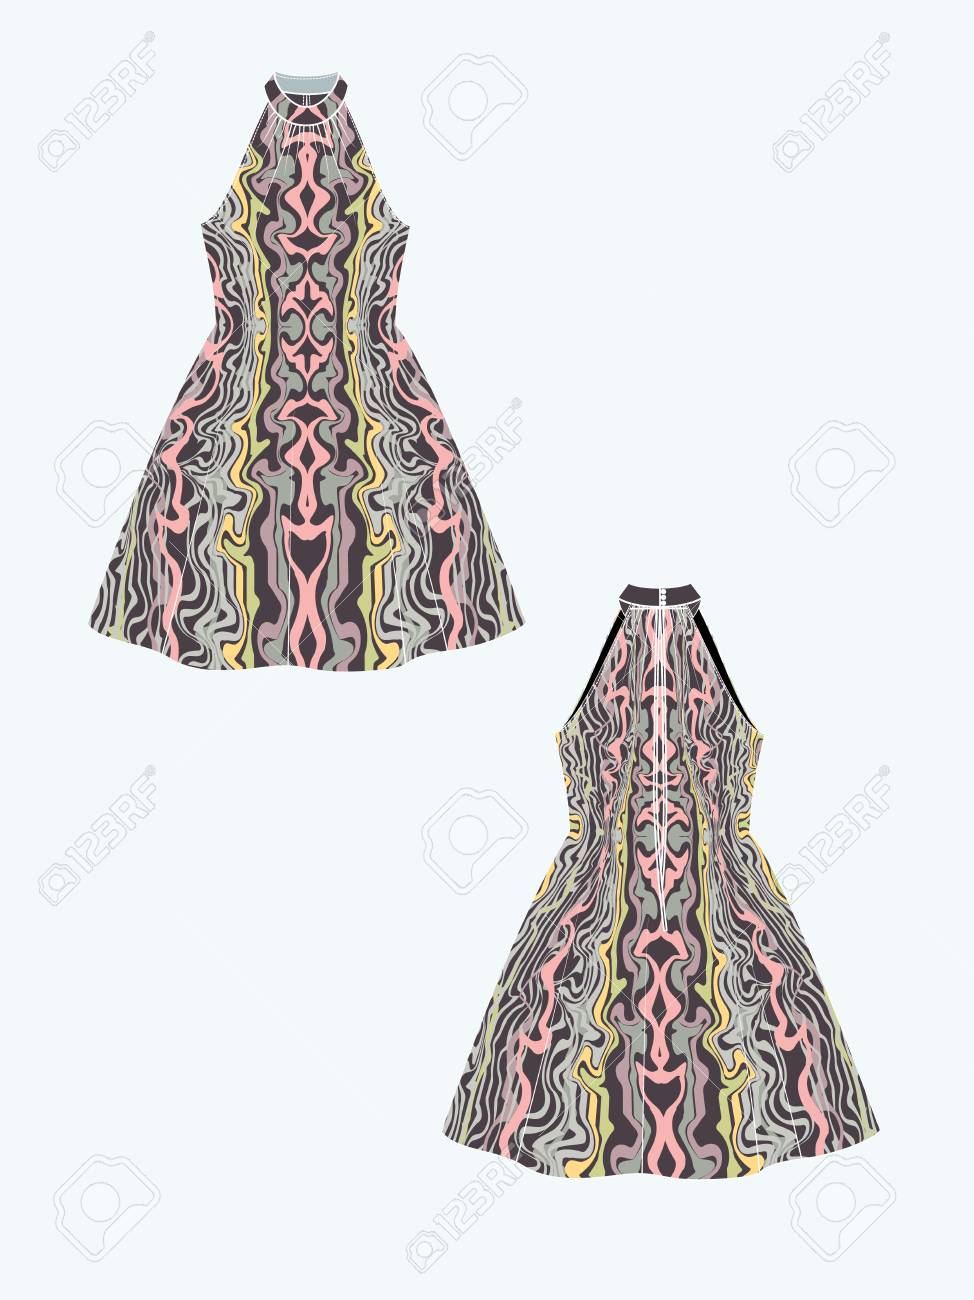 Customizable Fashion Design Template Mockup For Showcasing Fabric Royalty Free Cliparts Vectors And Stock Illustration Image 123917849